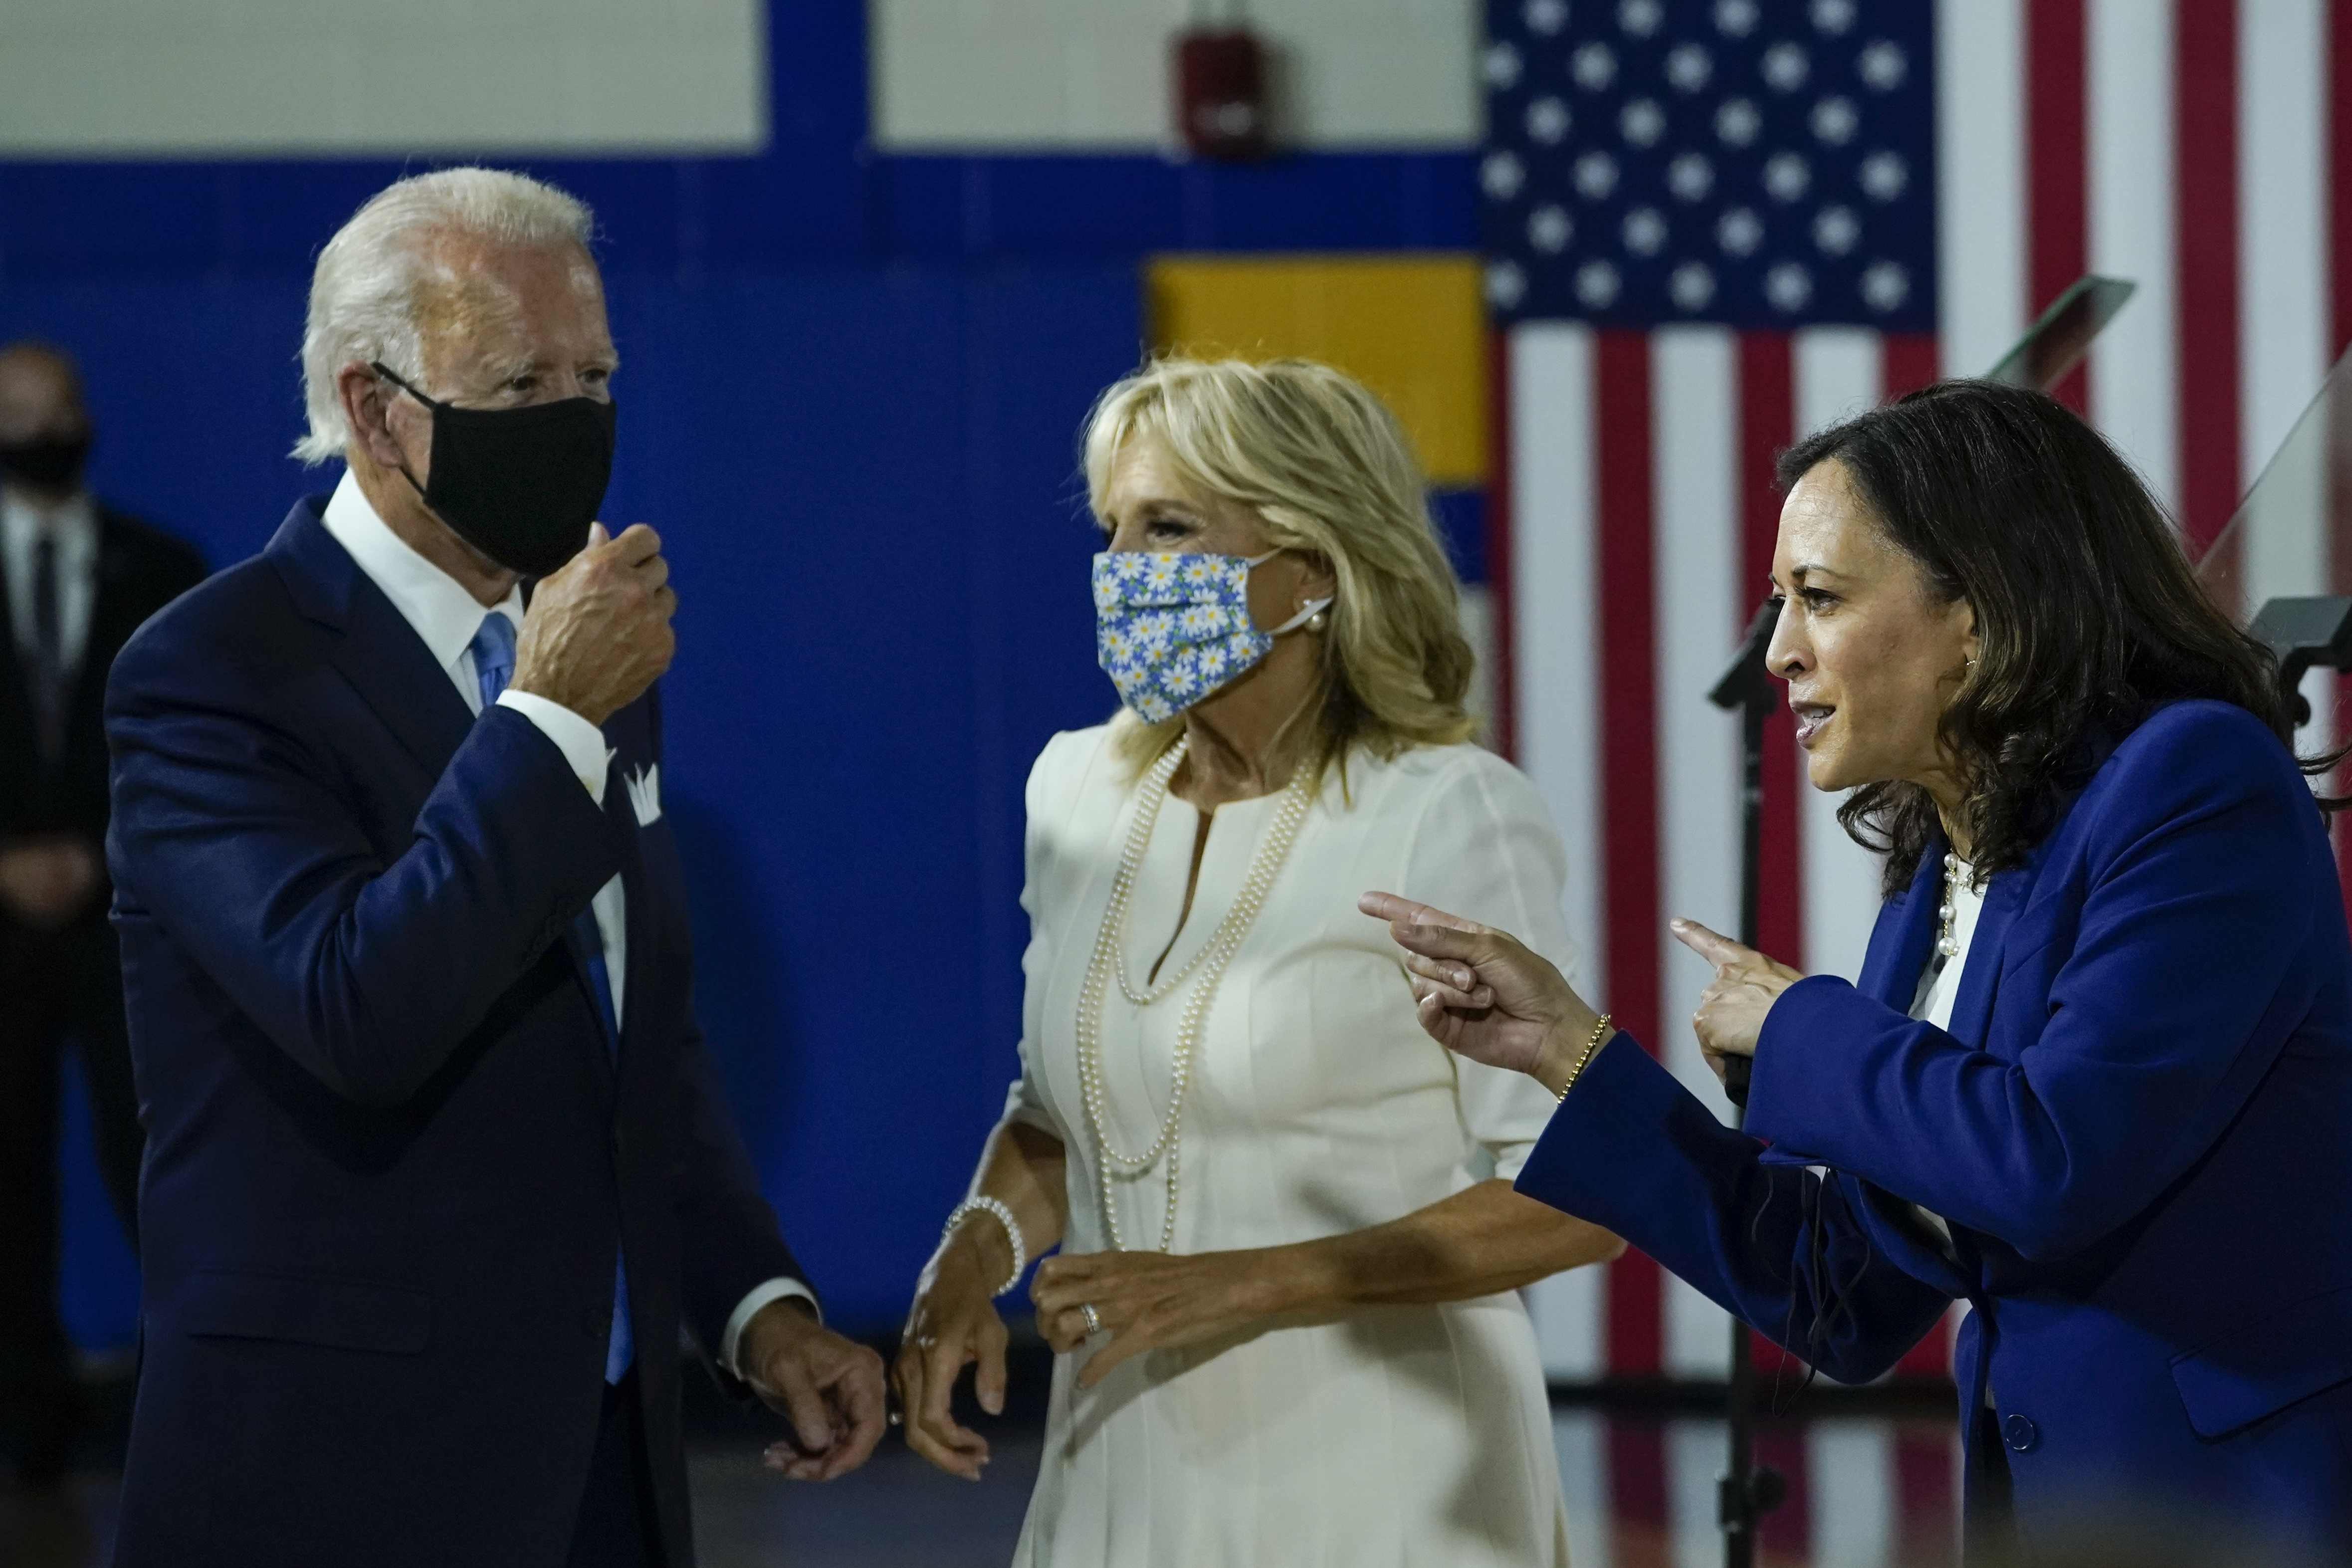 Democratic presidential candidate former Vice President Joe Biden, his wife Dr. Jill Biden; and Sen. Kamala Harris (D-CA), who was introduced as Joe Biden's running mate in the upcoming general election, mingle following the event at the Alexis Dupont High School on August 12, 2020 in Wilmington, Delaware. (Drew Angerer/Getty Images)